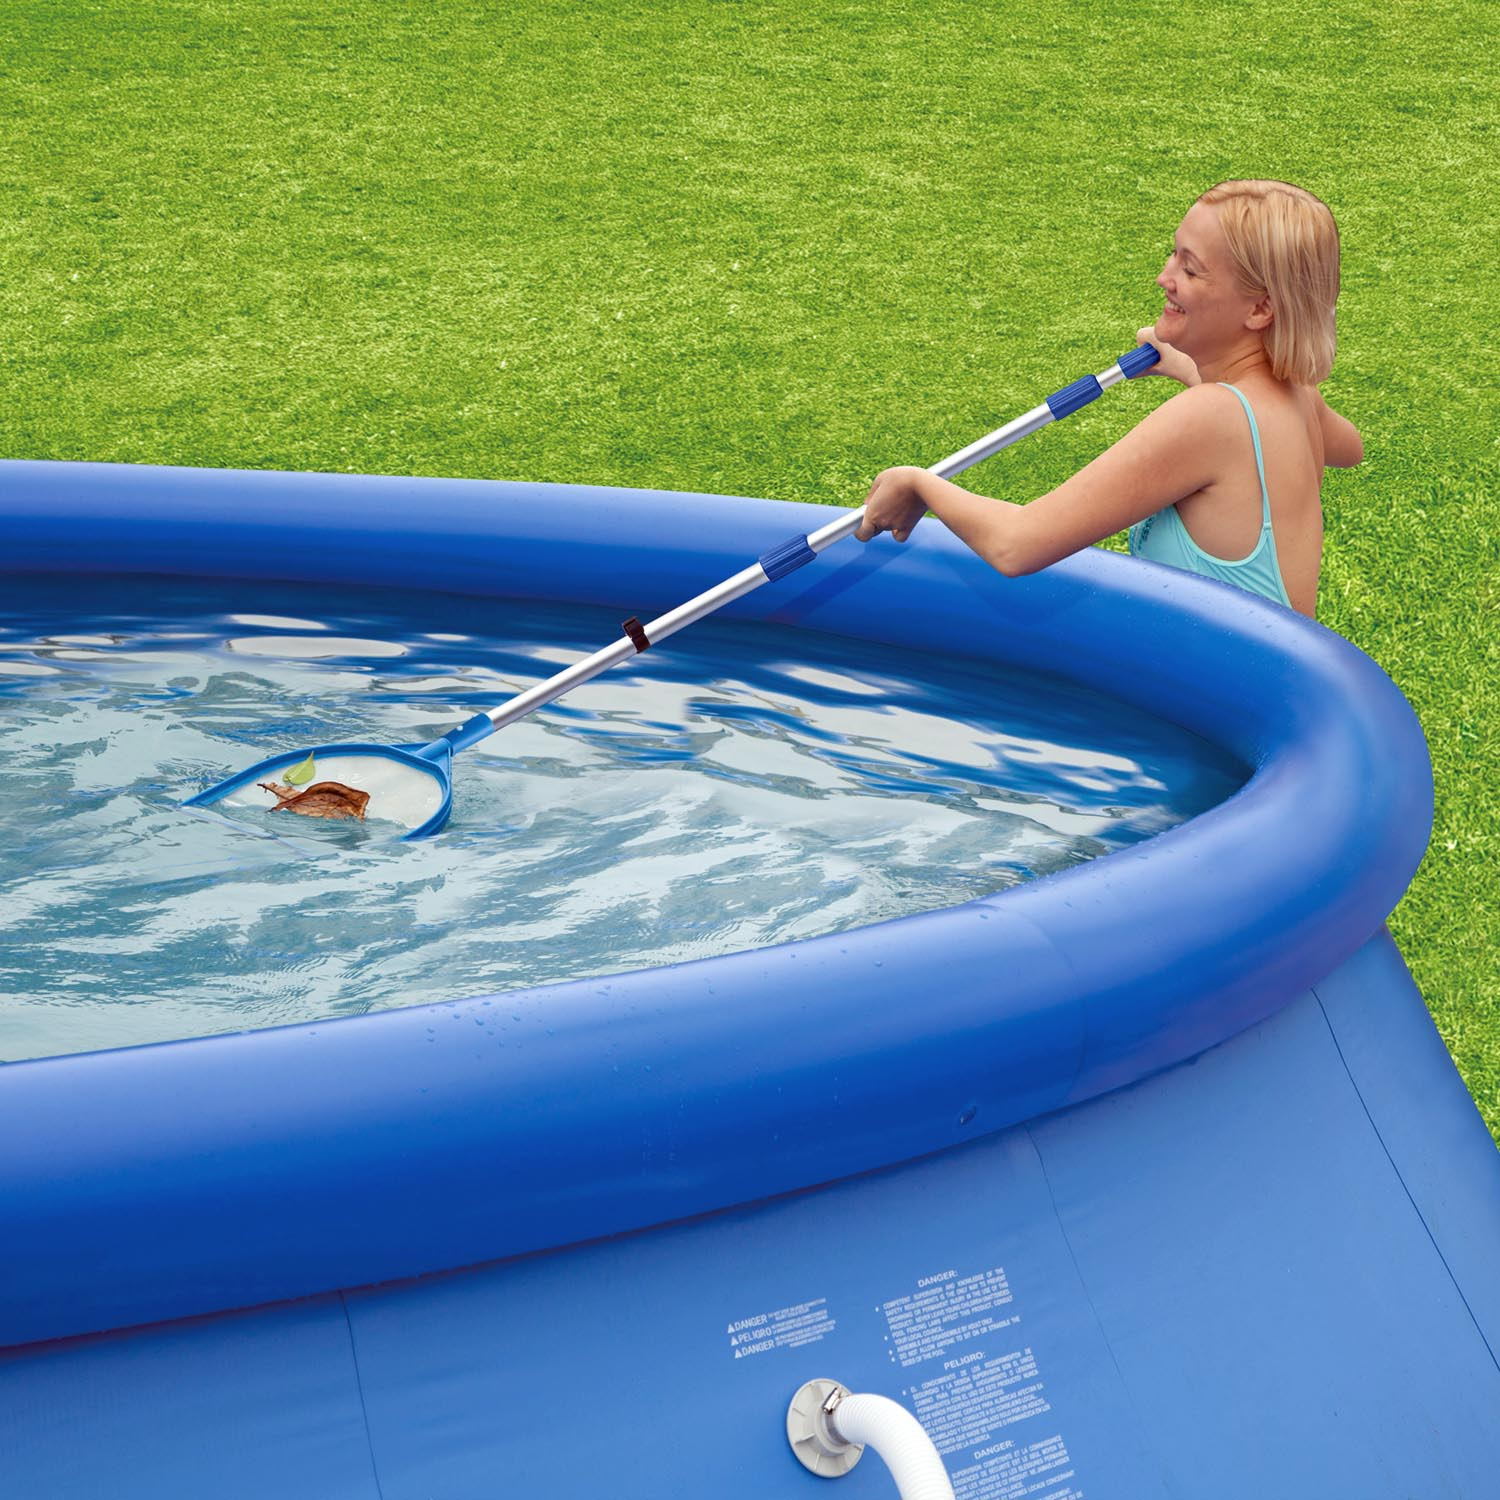 Quick Pool Bodensauger Summer Escapes Pool Reinigungsset Mit Kescher Bodensauger